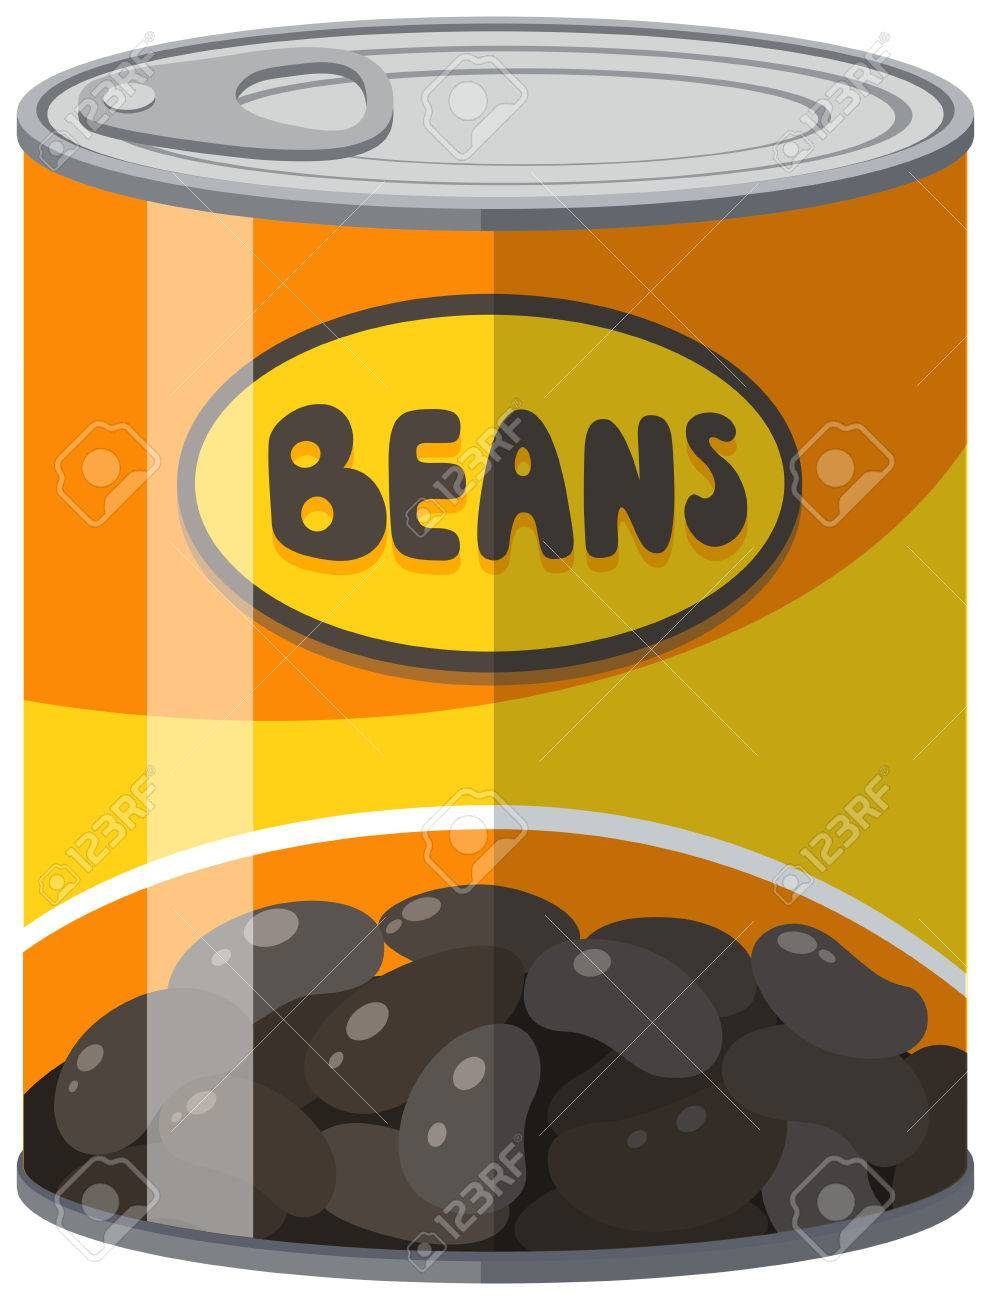 Black beans in aluminum can illustration.